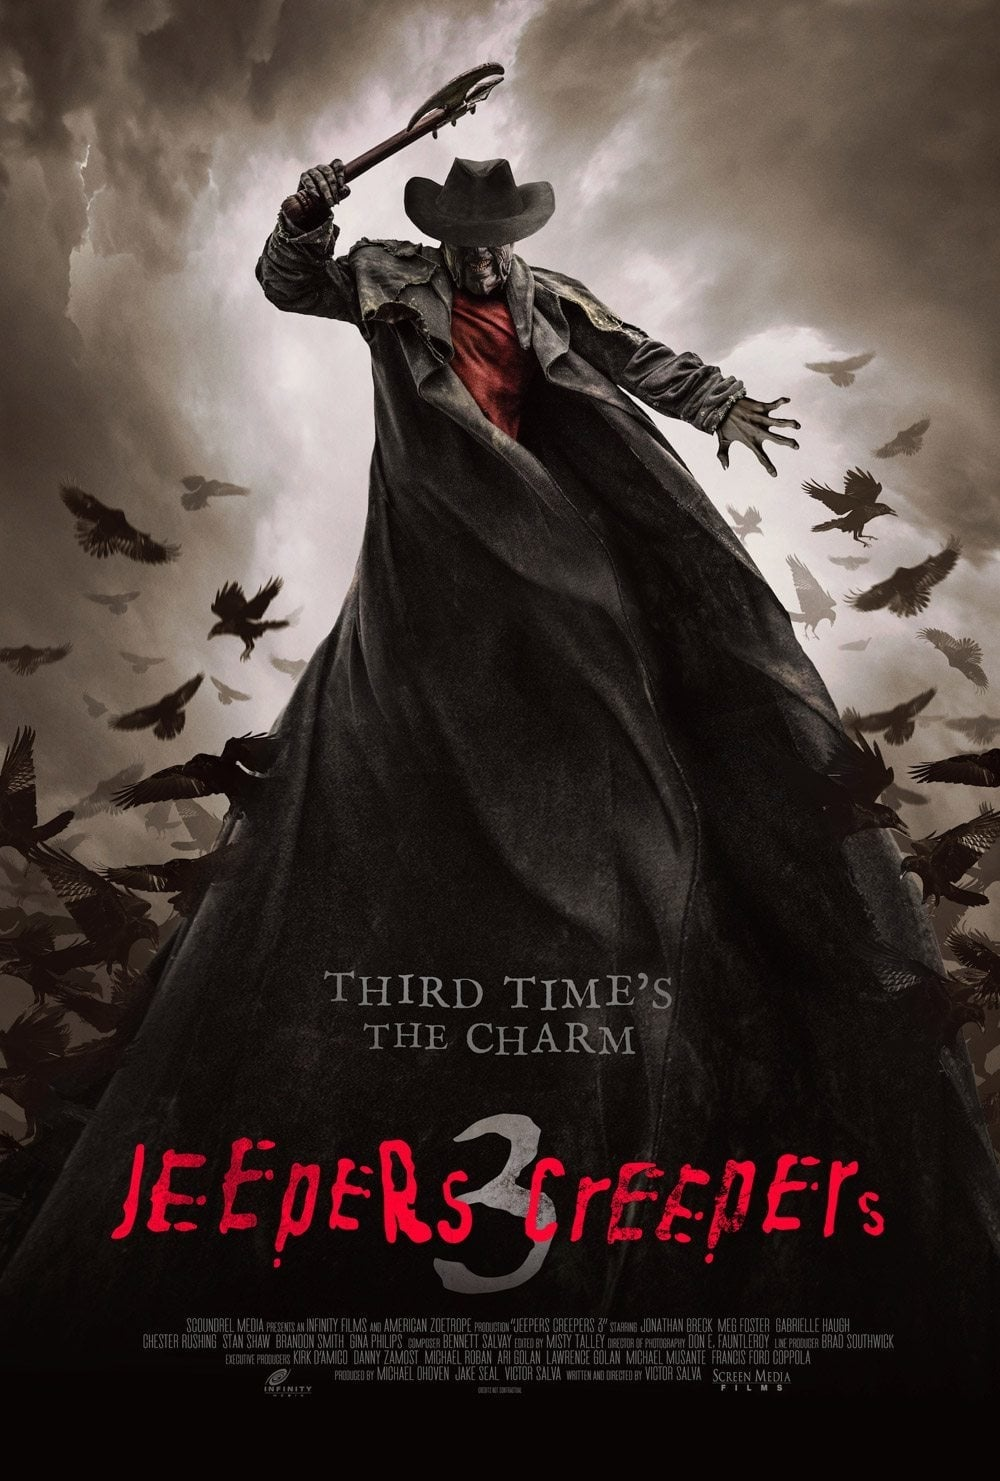 image for Jeepers Creepers III